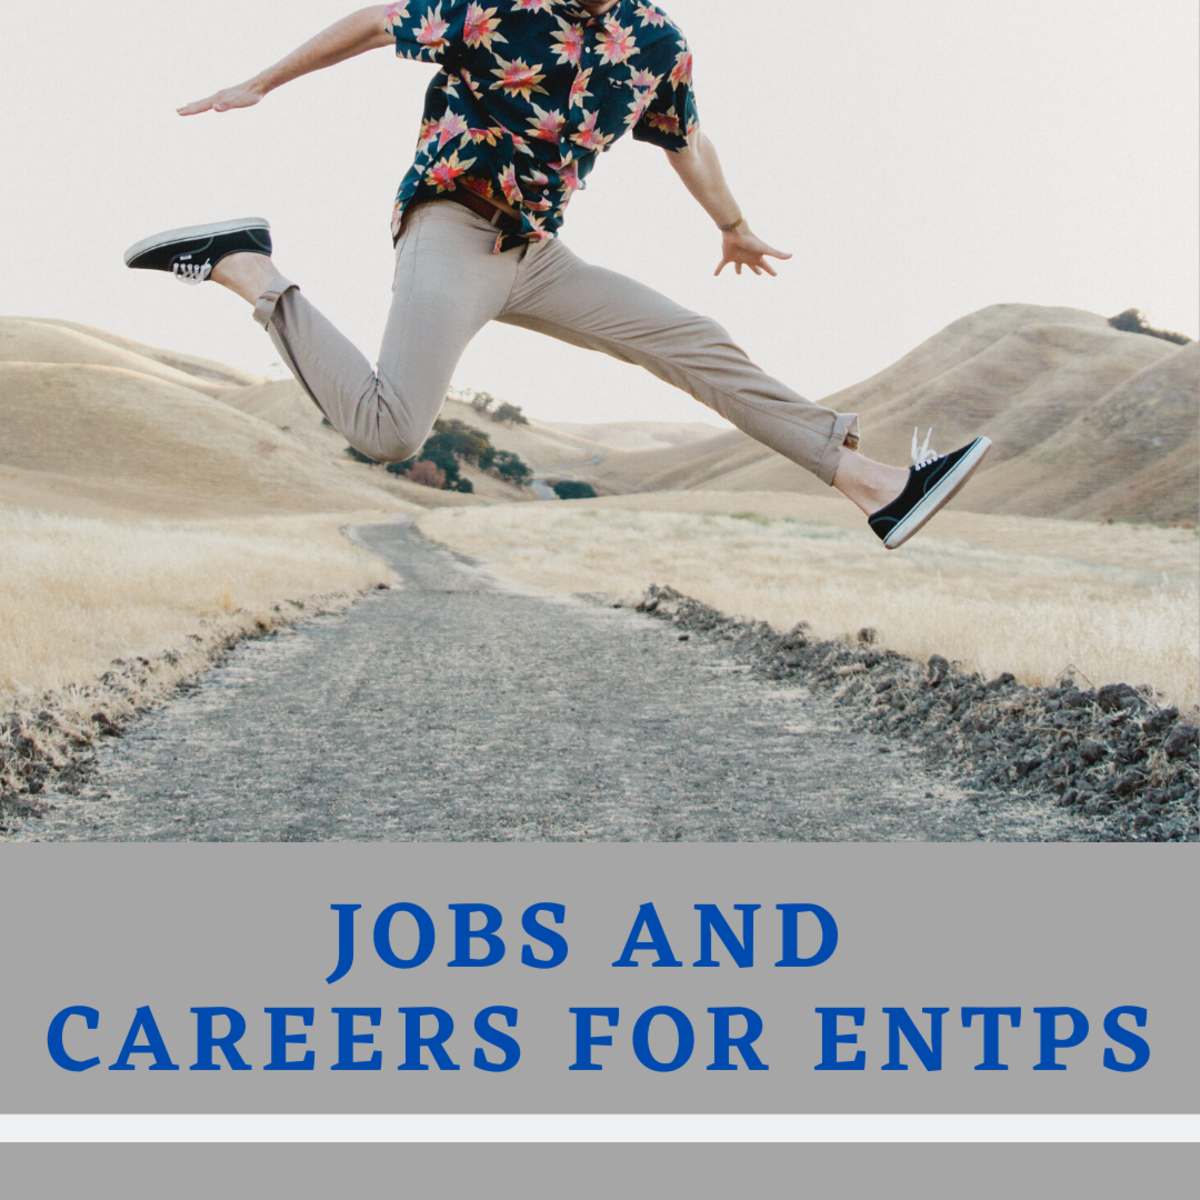 Jobs and Careers for ENTPs—5 Tips to Find Your Fit